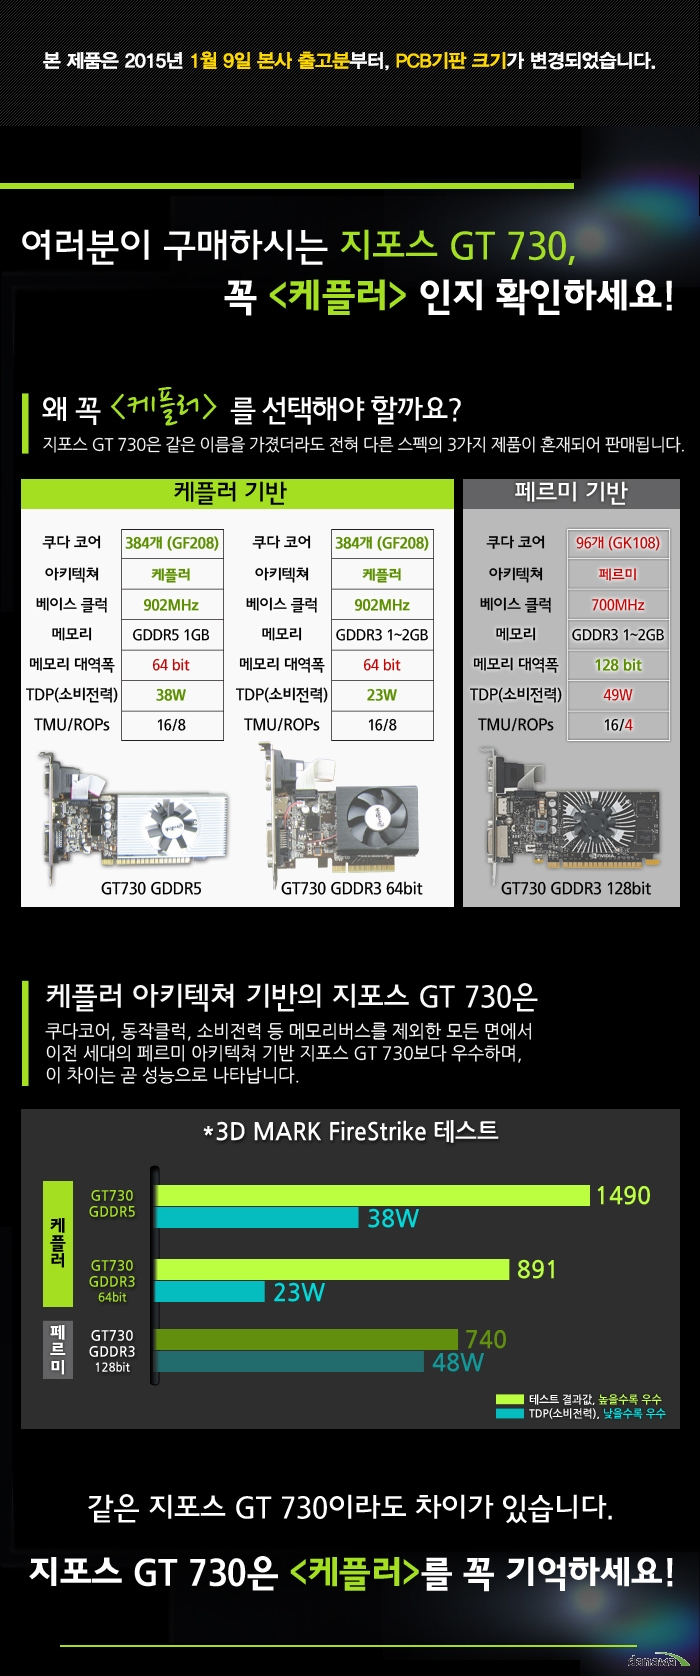 XENON GT730 D3 1GB LP 메인 이미지